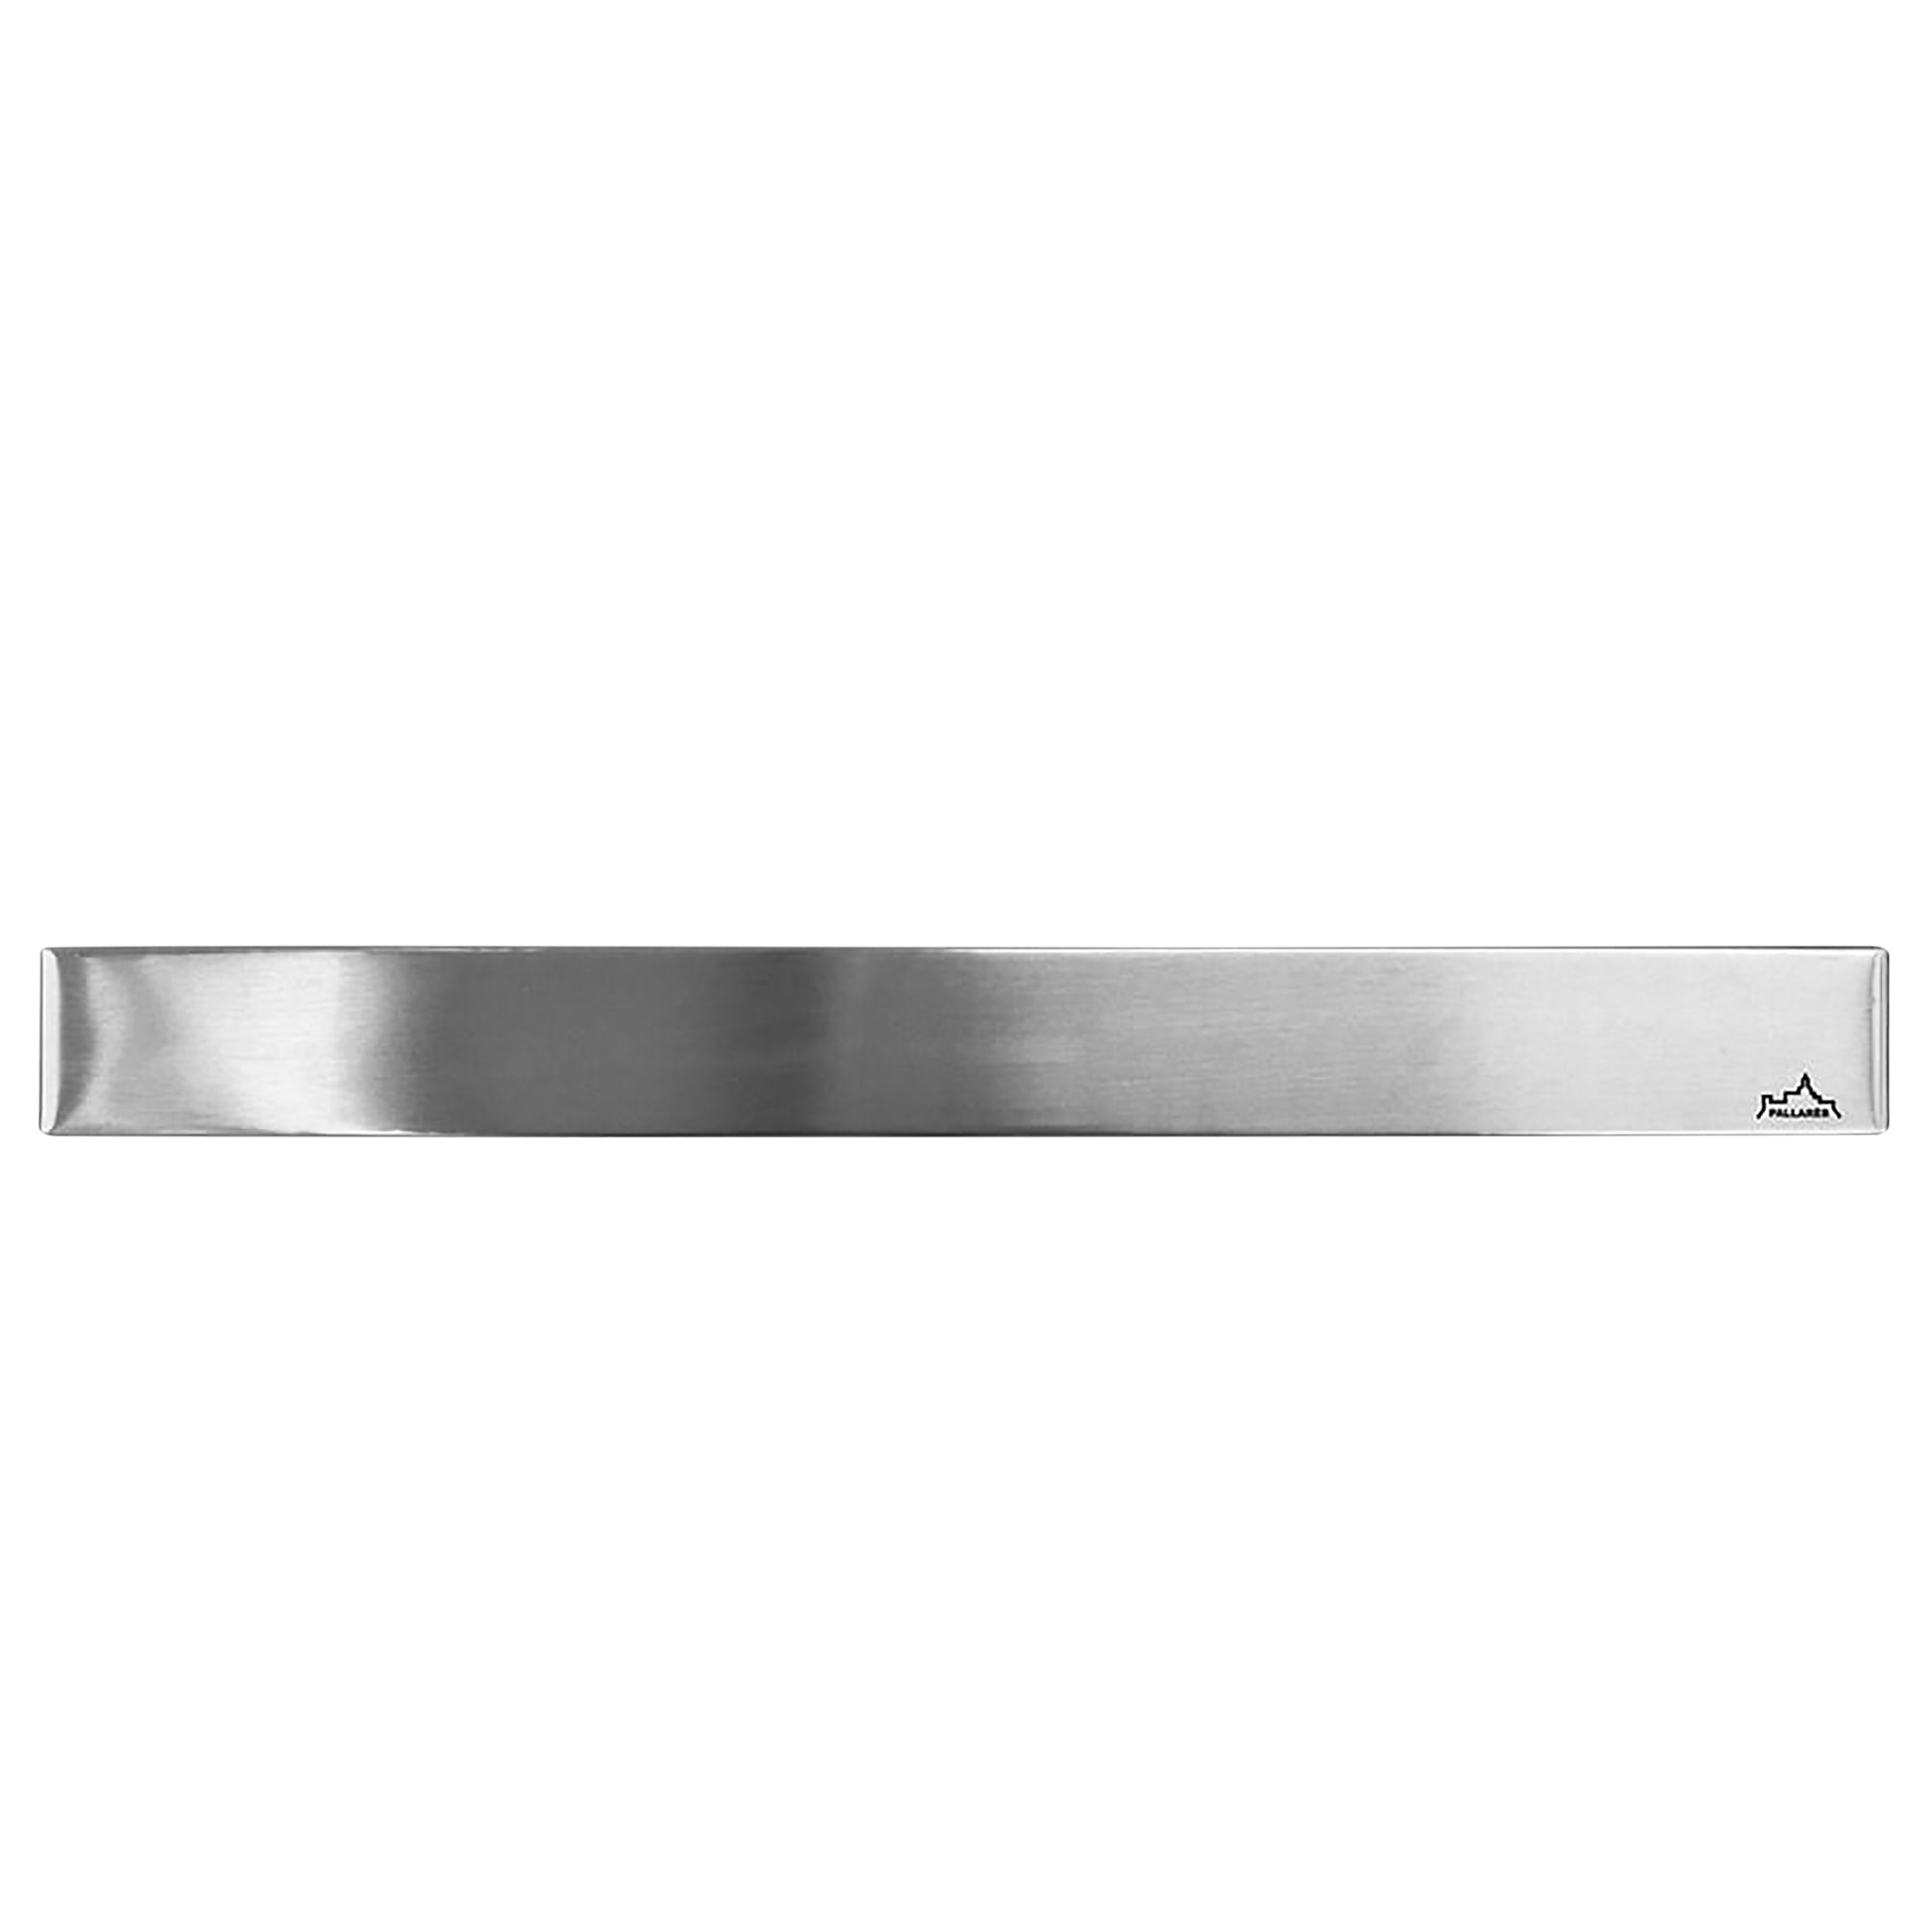 Pallarès Magnetic Knife Rack - Stainless Steel - Paper Plane - Mt Maunganui Stockist